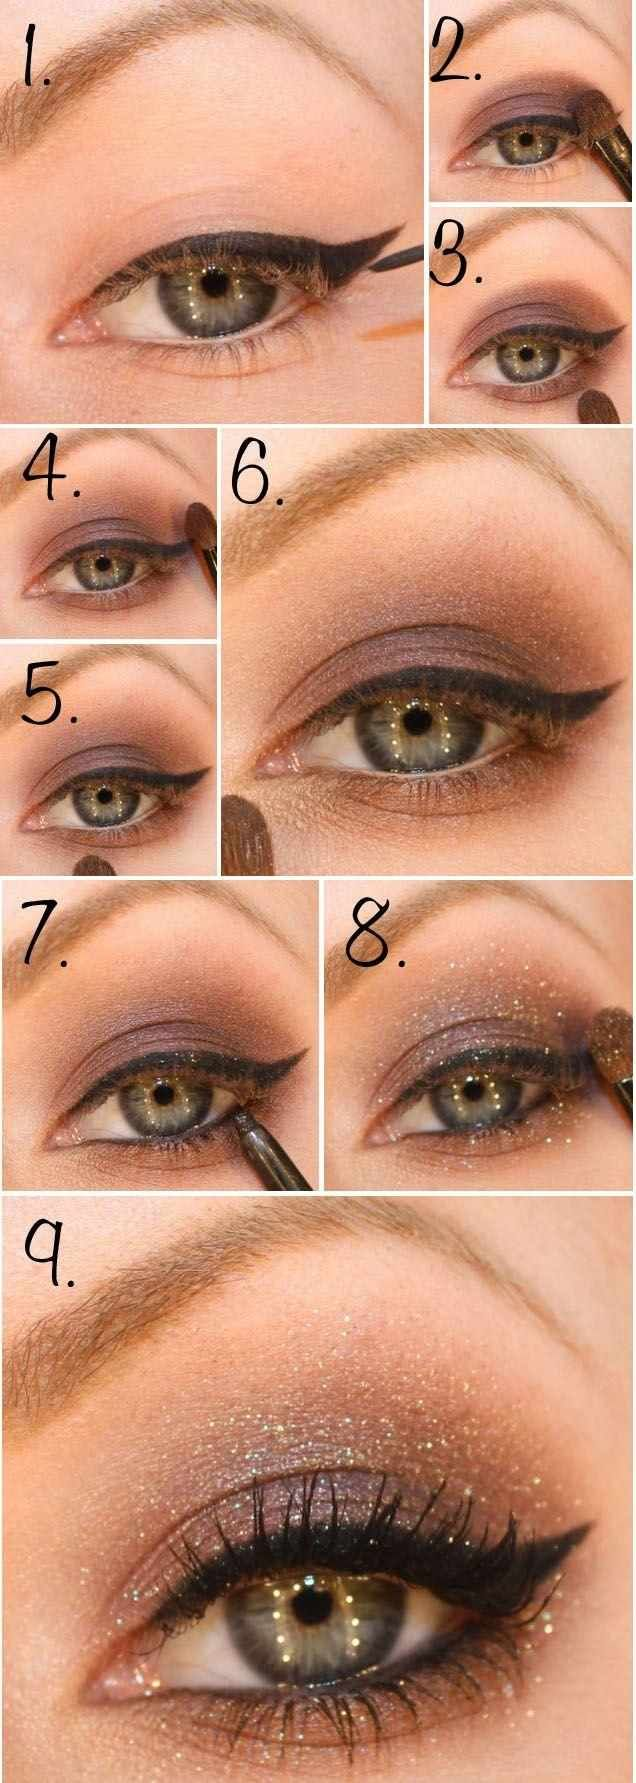 Tuto maquillage yeux eye liner fard paupi res marron particules makeup pinterest - Maquillage mariage yeux marron ...